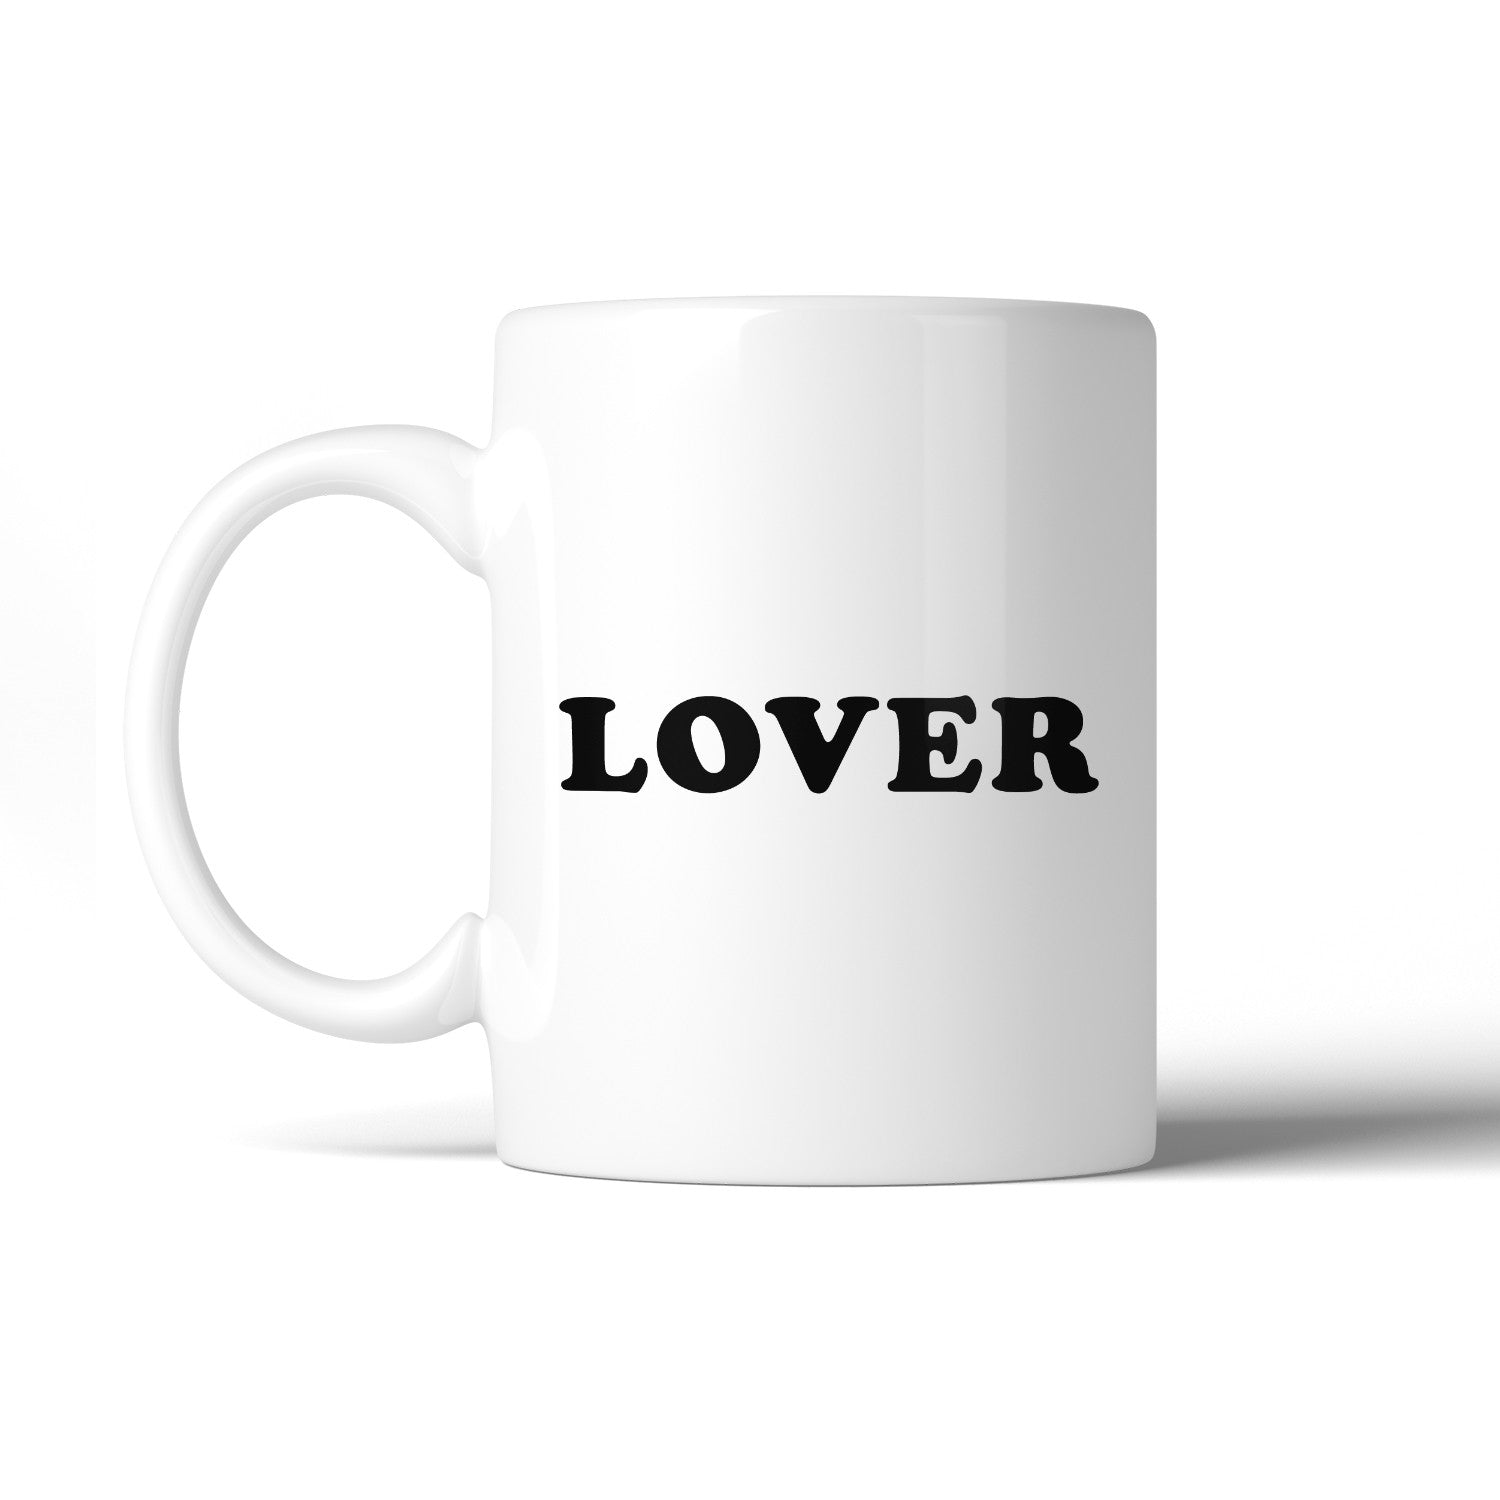 Coffee Mug Design Ideas diy sharpie mug Lover Cute Ceramic Coffee Mug Unique Design Coffee Cup Gift Ideas 365inlove